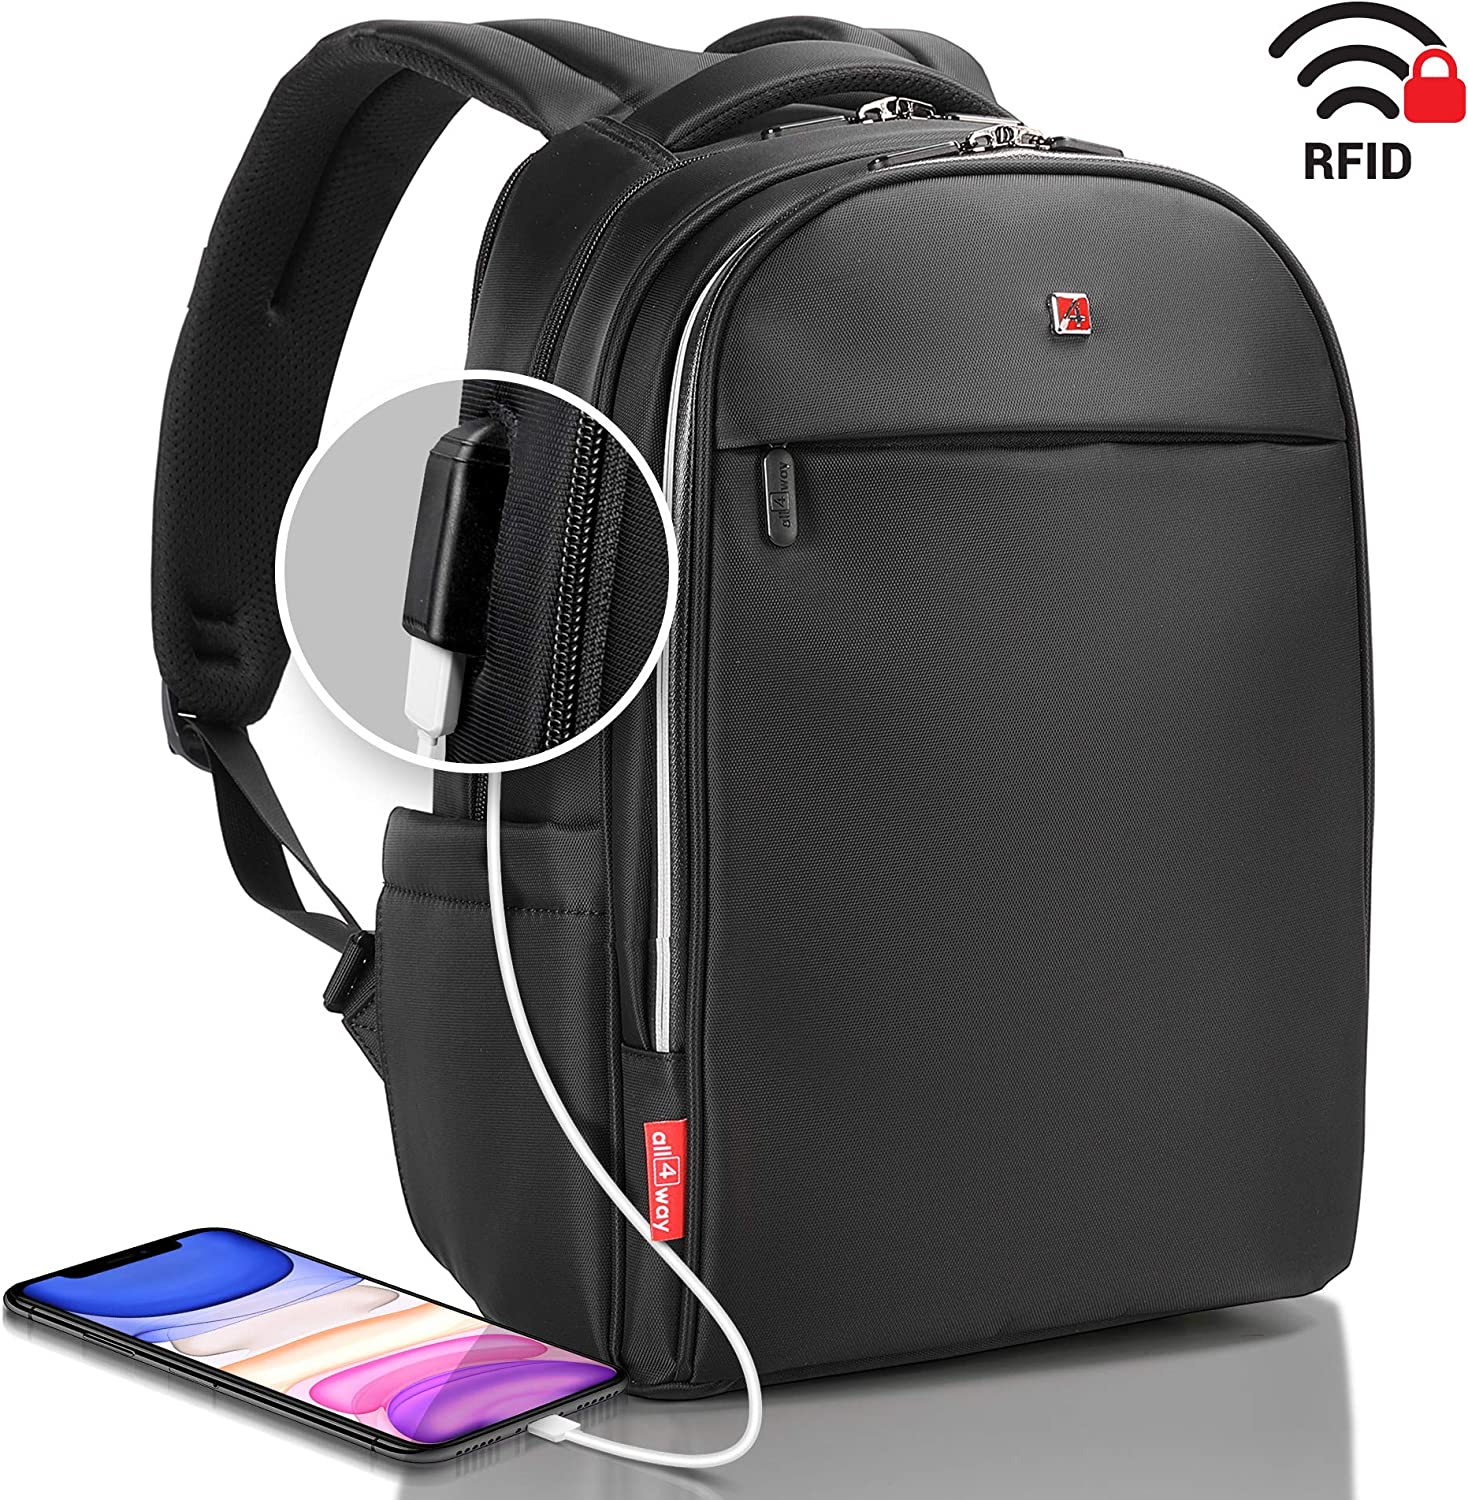 "Laptop Backpack Black RFID Blocking - Travel Backpack USB Quick Charge - Swiss Design 15"" Business College School Waterproof Backpack for Men Women, New Model"